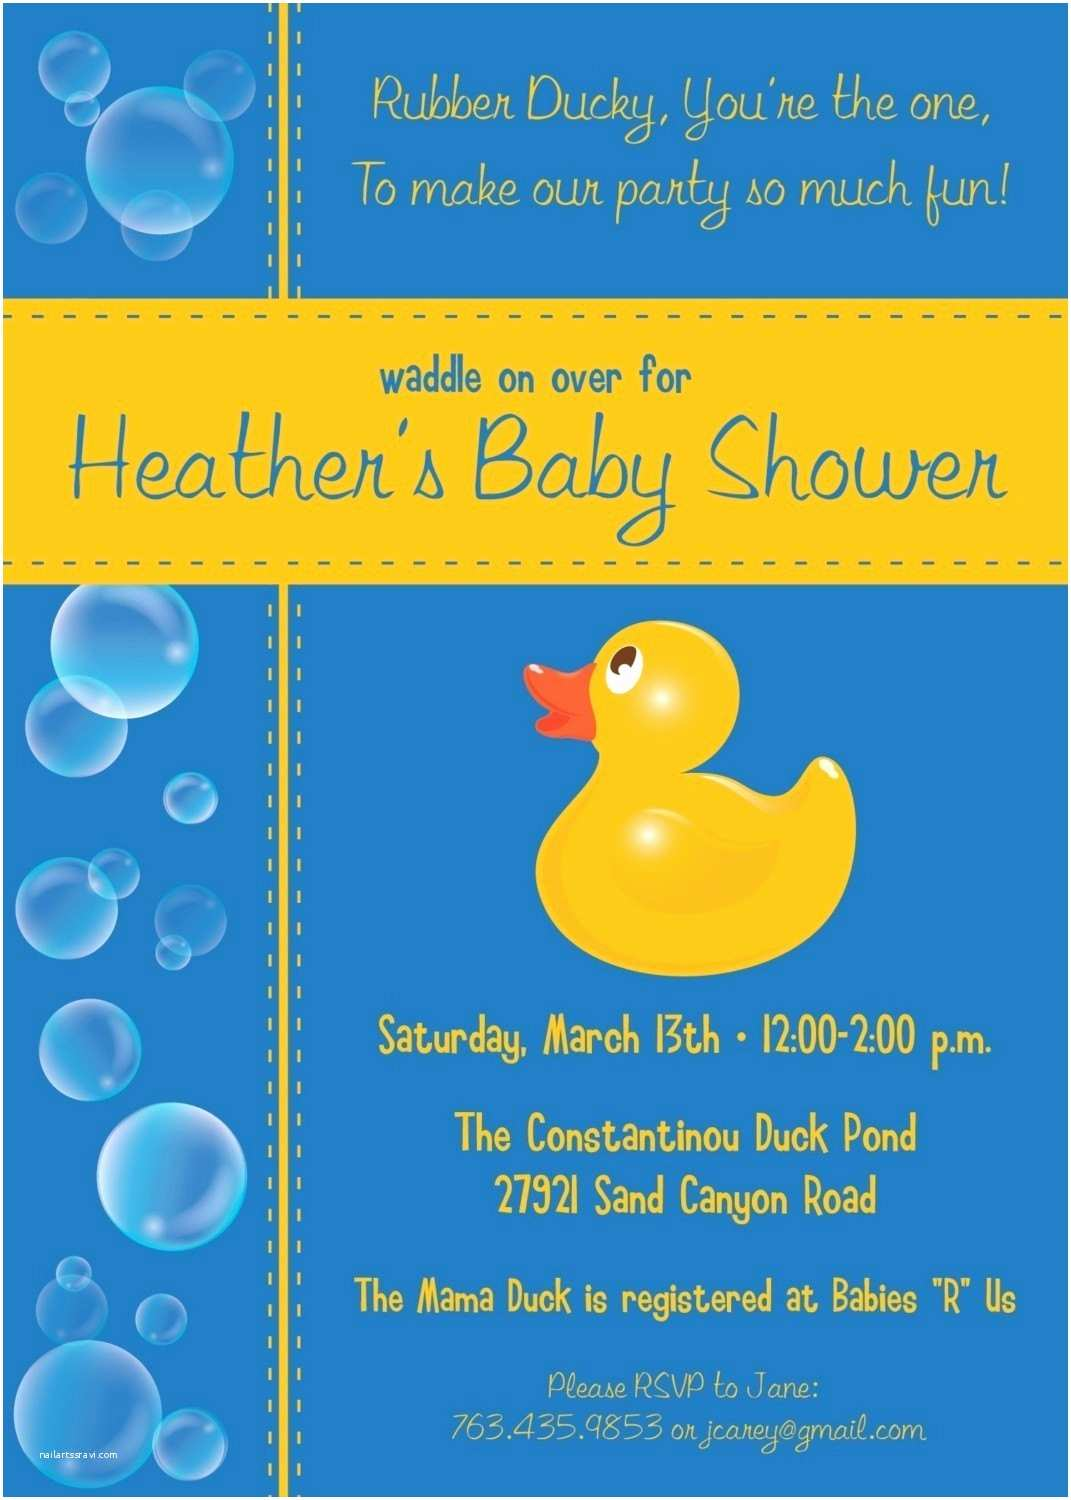 Rubber Duck Baby Shower Invitations Bubbles Rubber Ducky Custom Baby Shower by Kimnelsoncreative